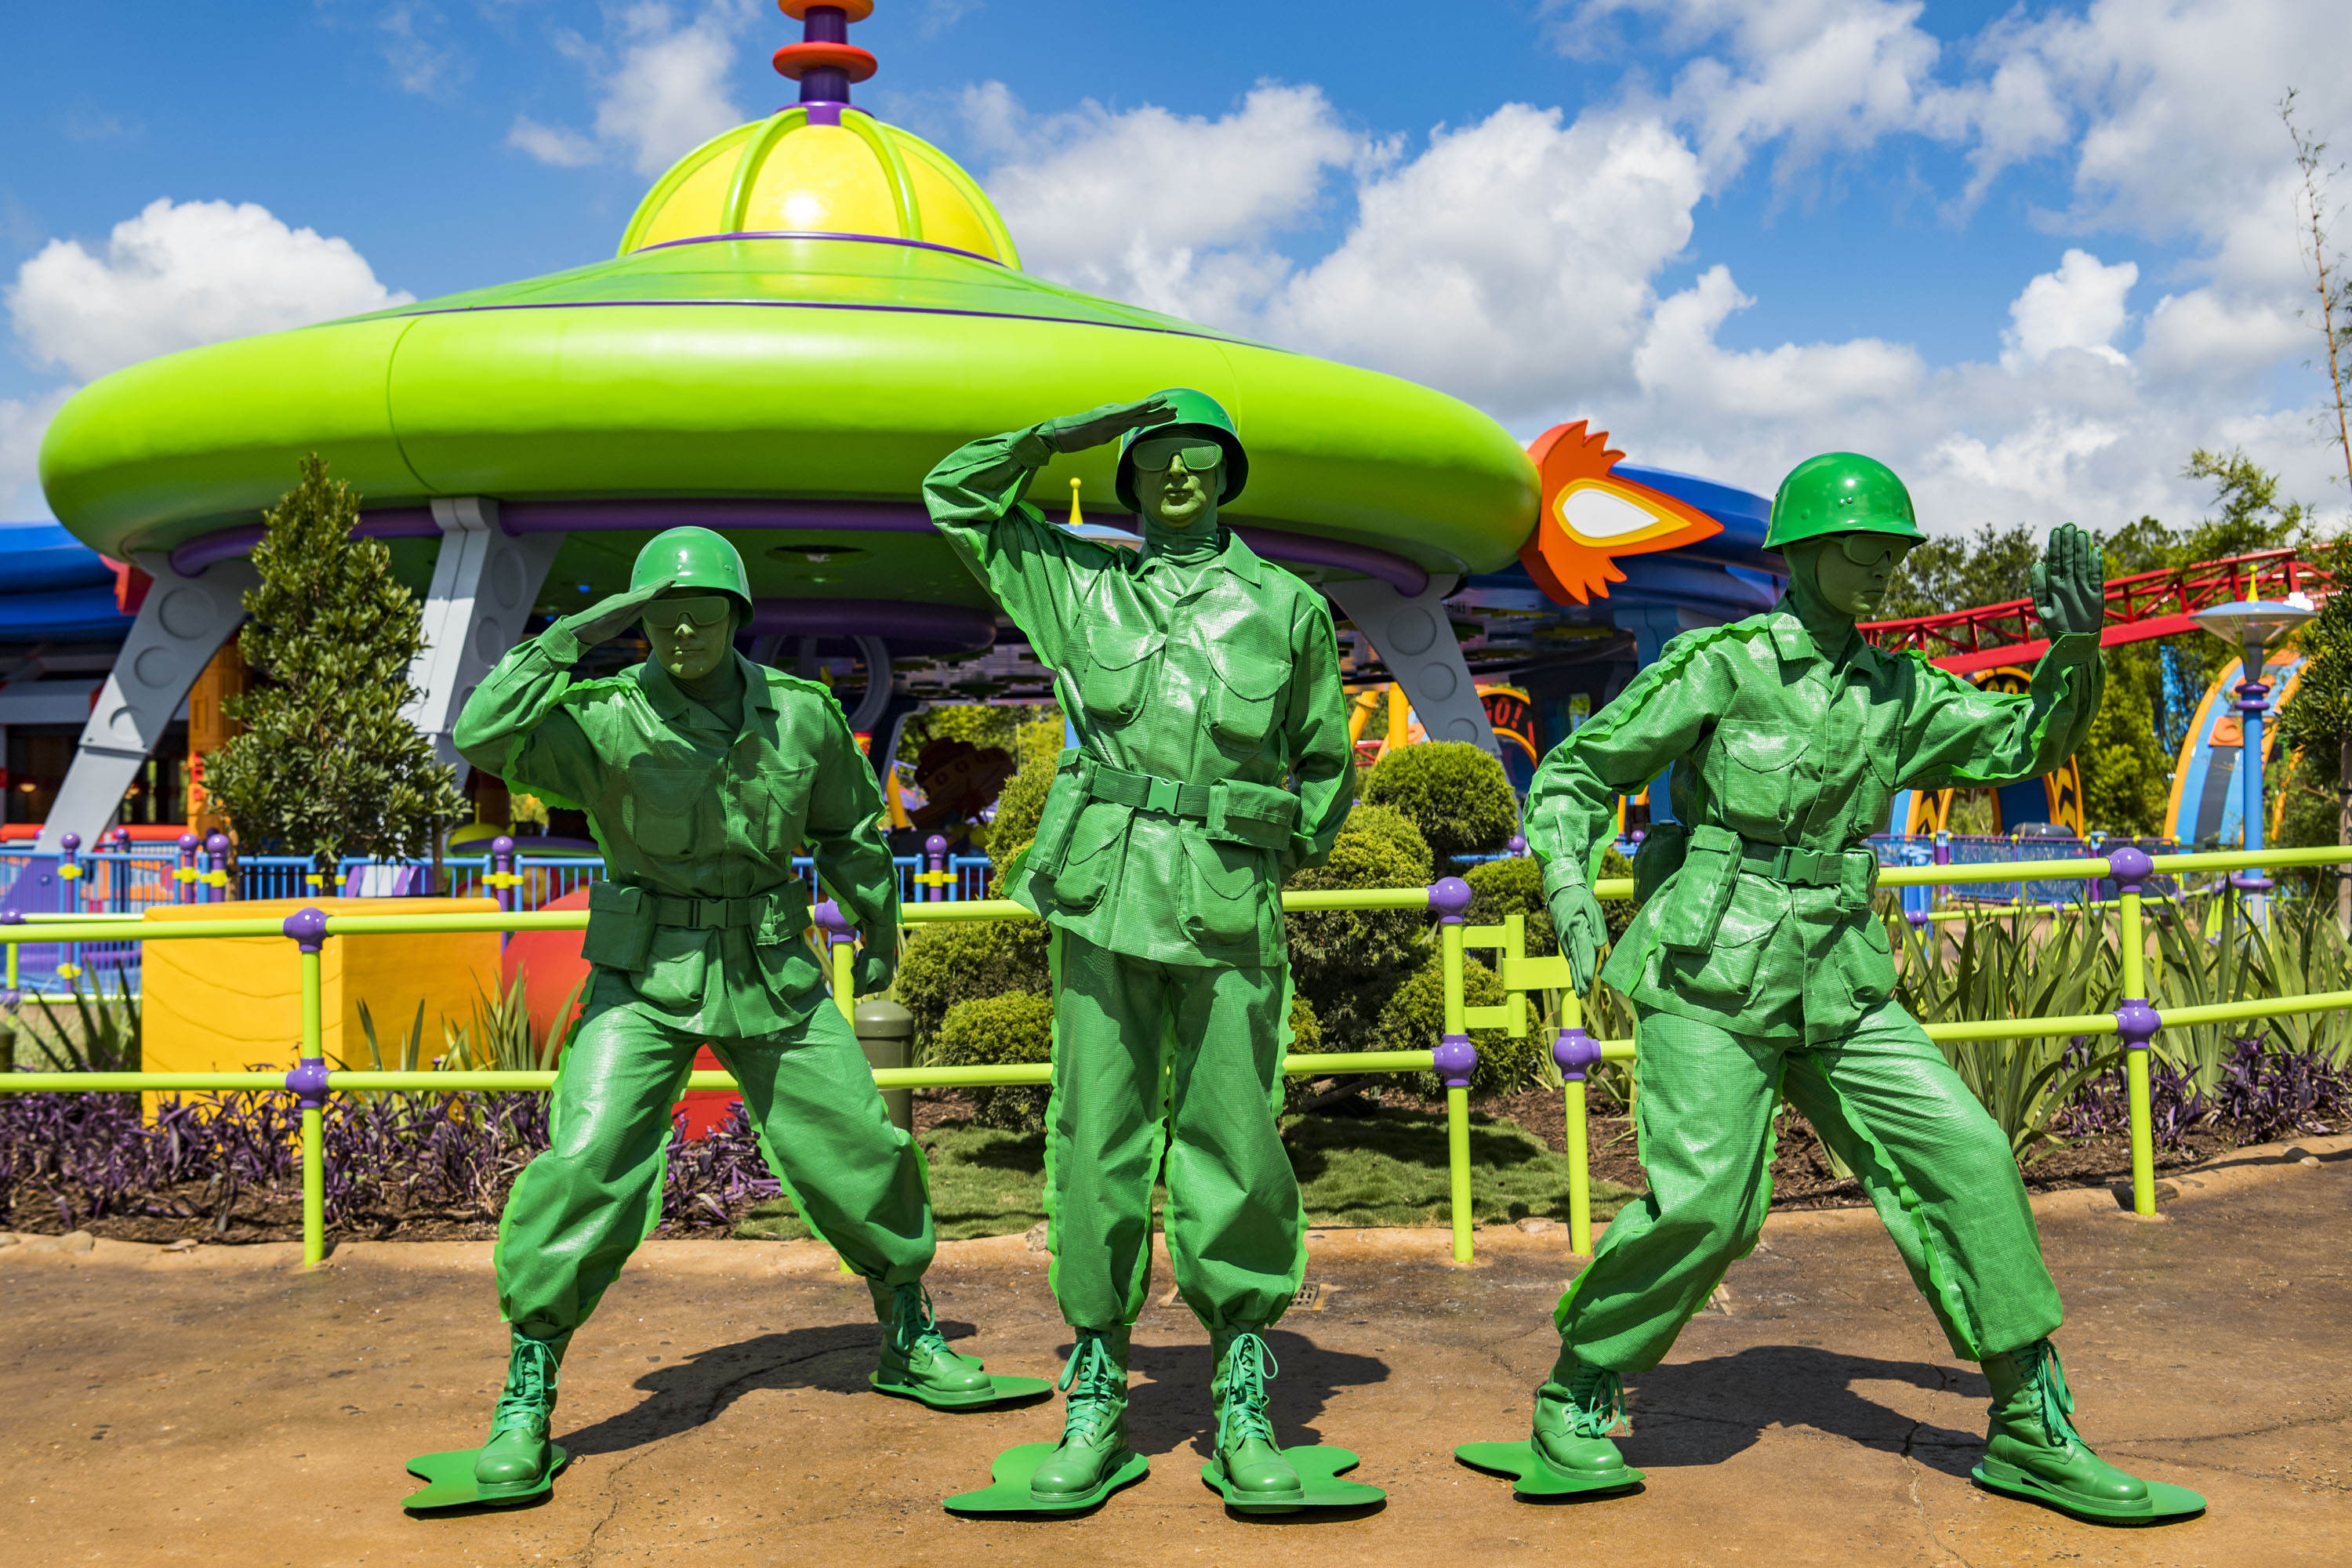 Green Army Men march through the land several times a day and stop to play Sarge Says with guests